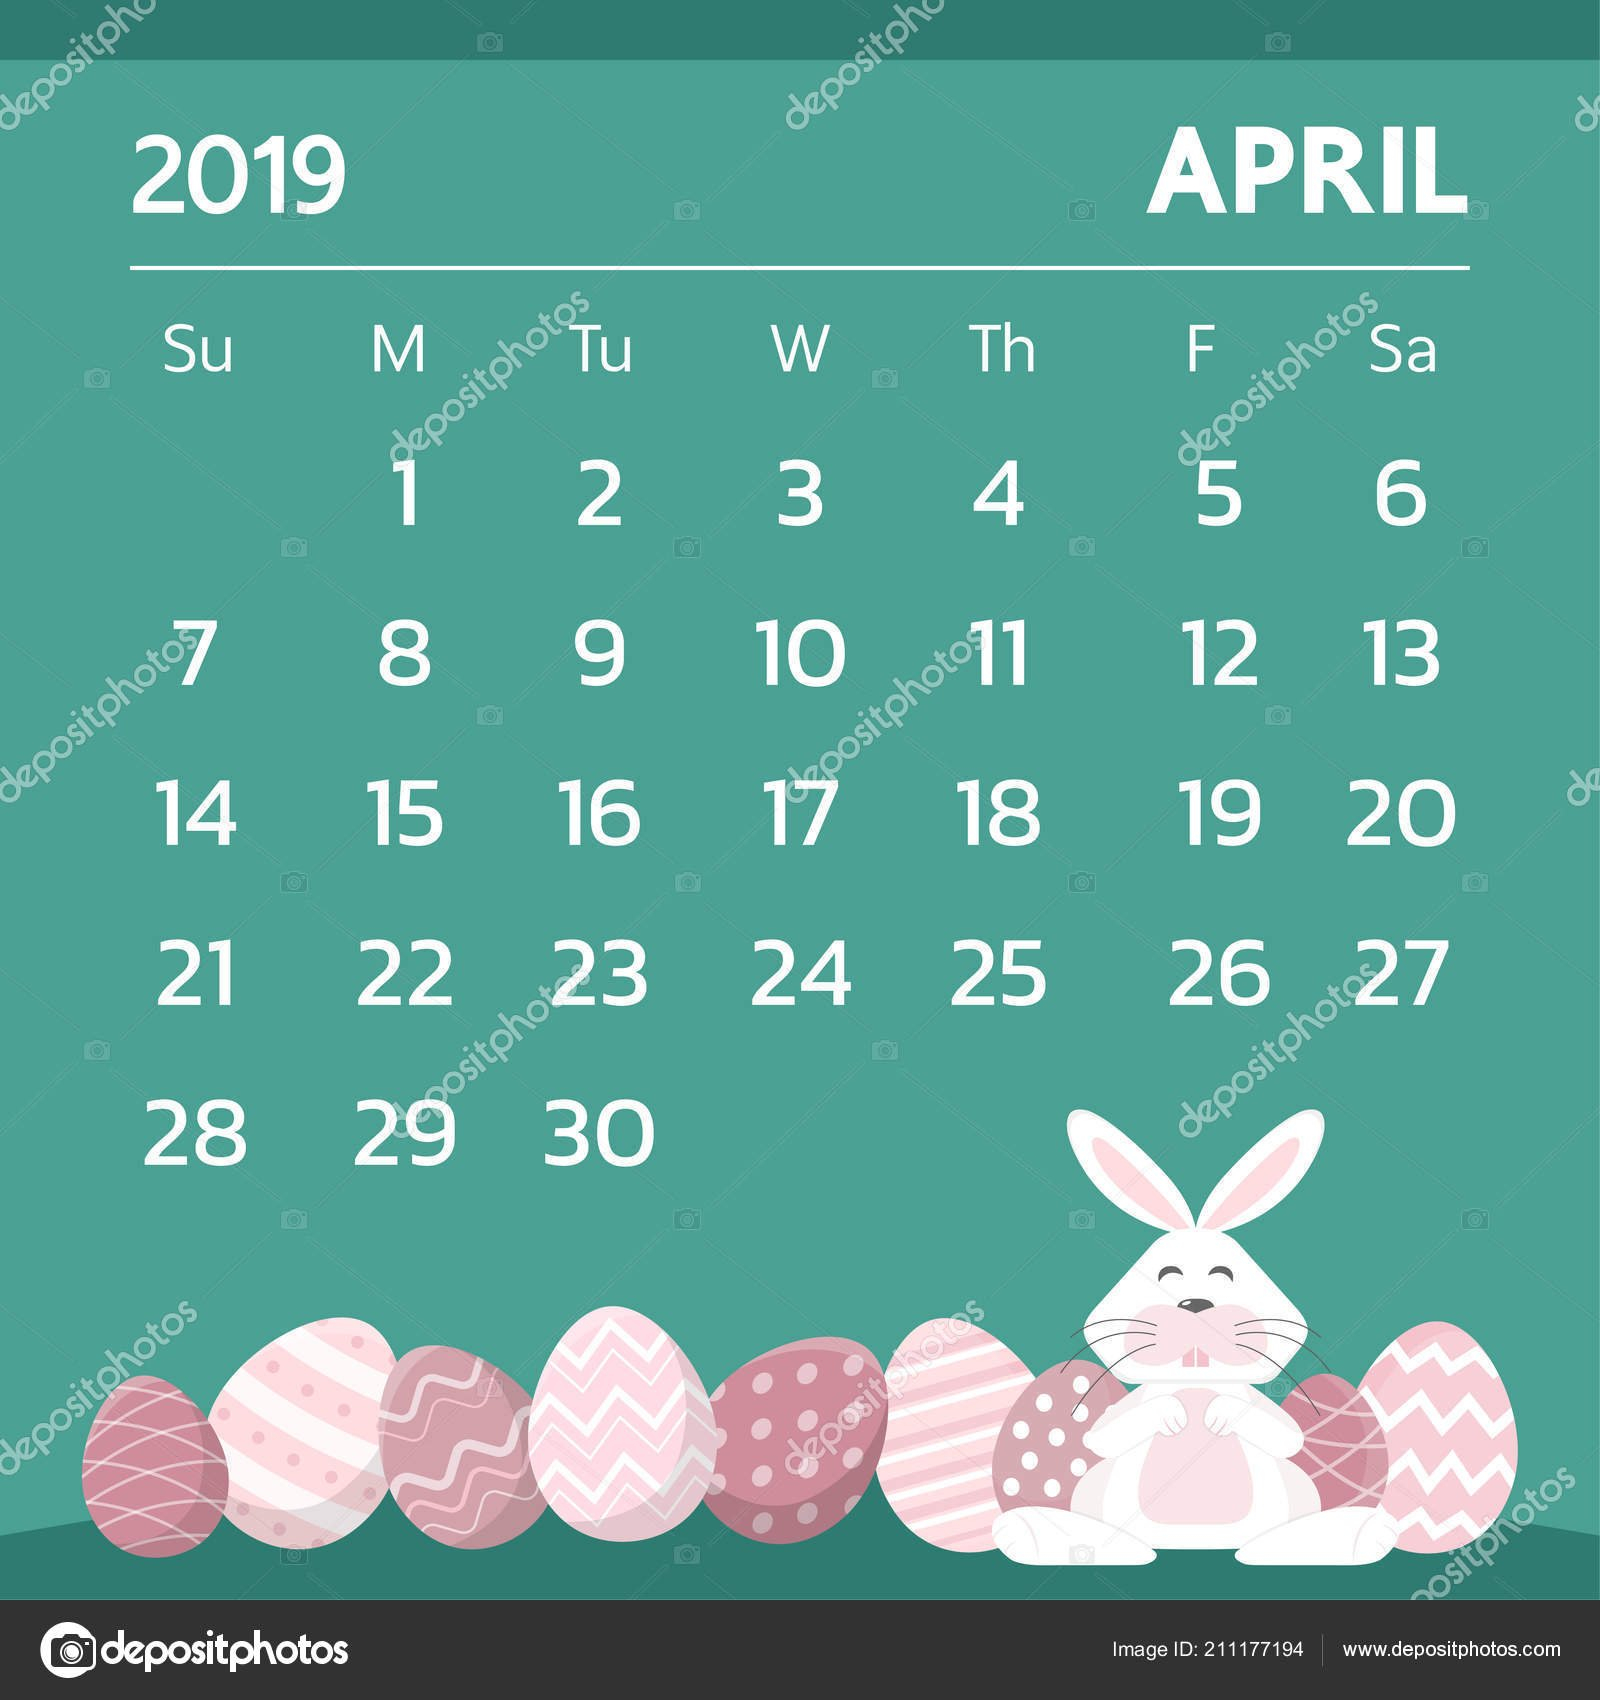 Calendar April 2019 Easter Egg Theme Vector — Stock Vector Calendar 2019 Easter